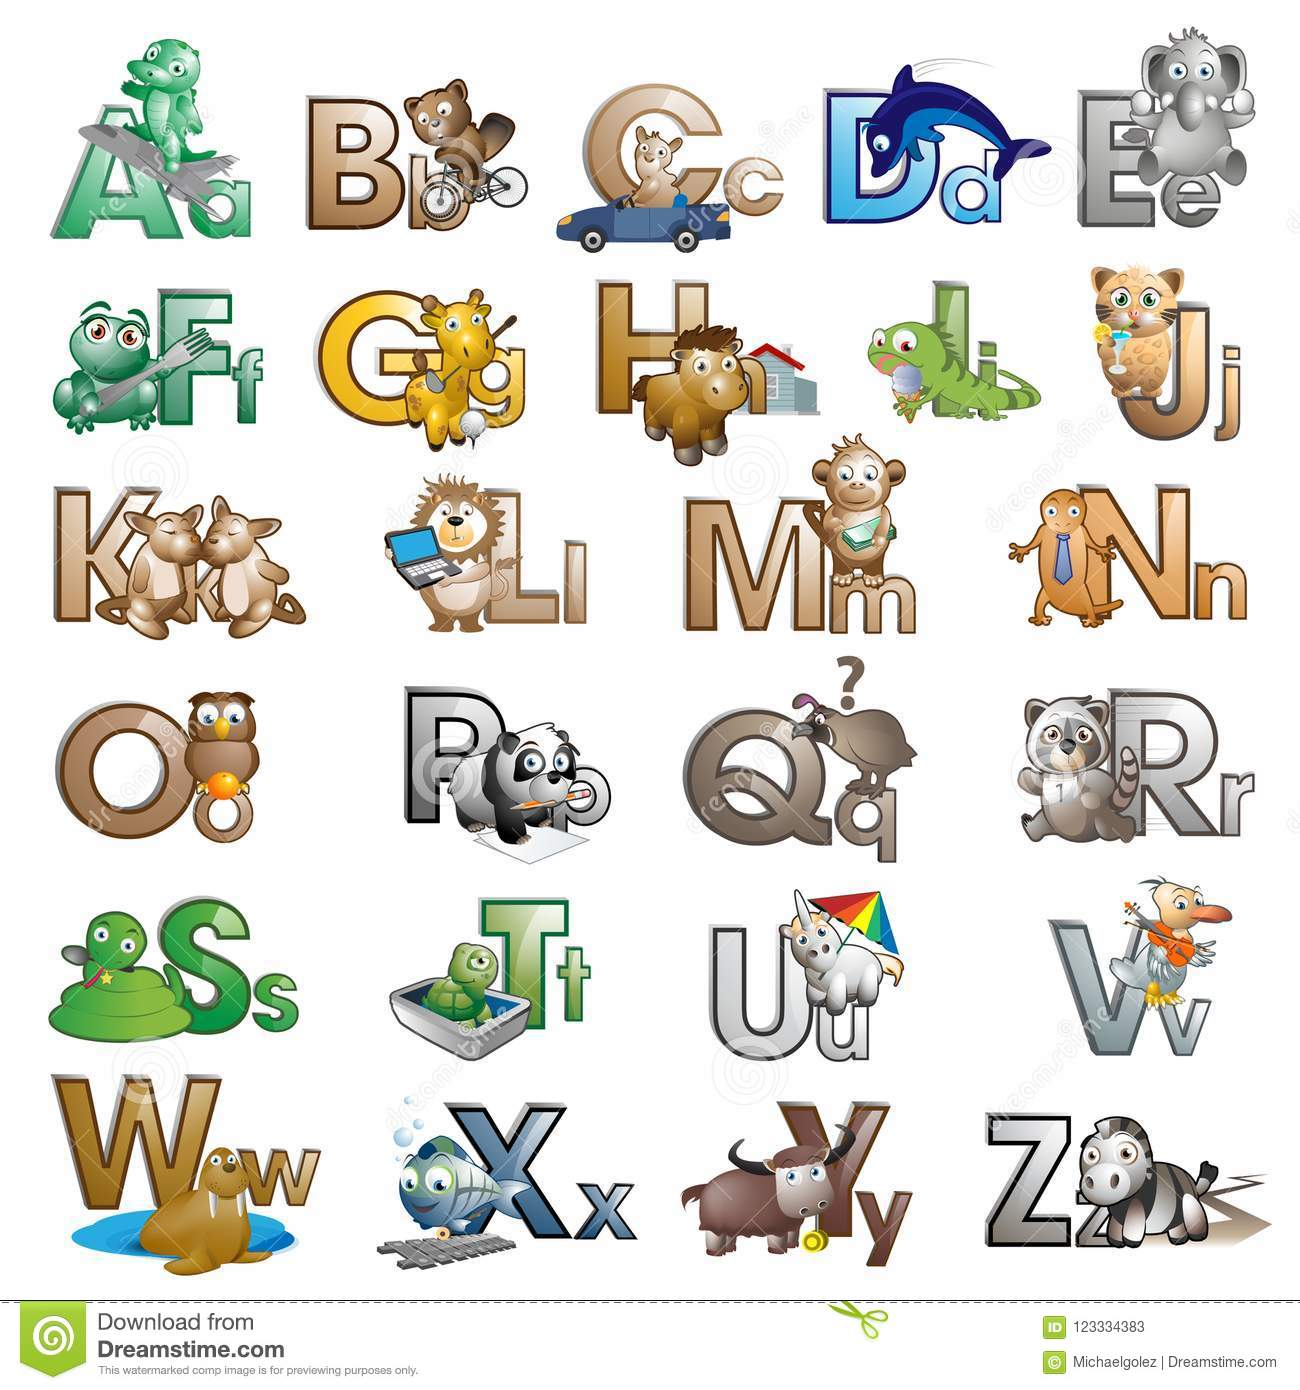 Cartoon Characters 8 Letters : Letters of the alphabet with cartoon characters stock illustration